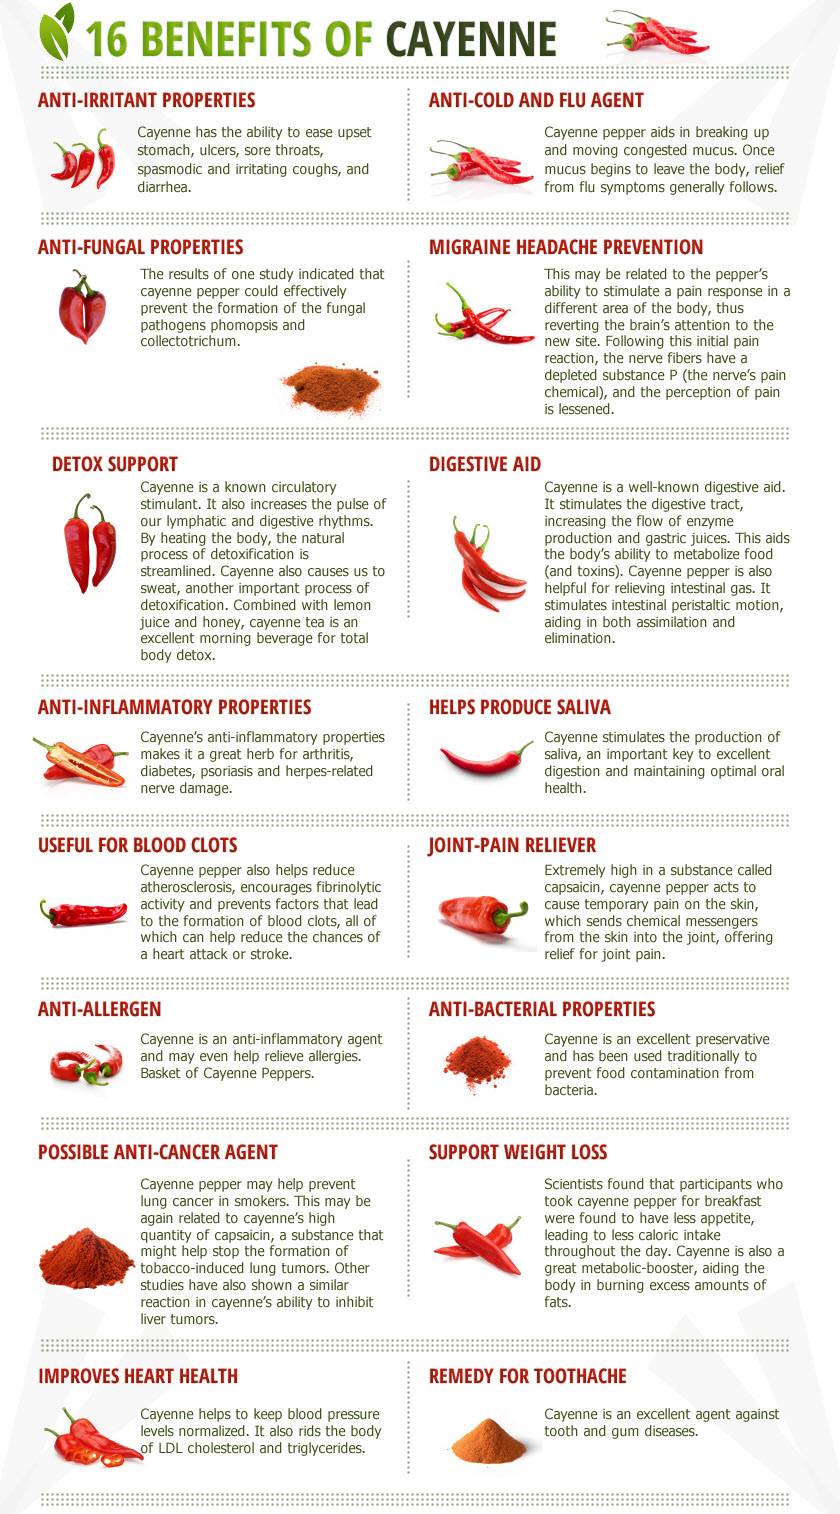 cayenne-pepper-and-weight-loss-2